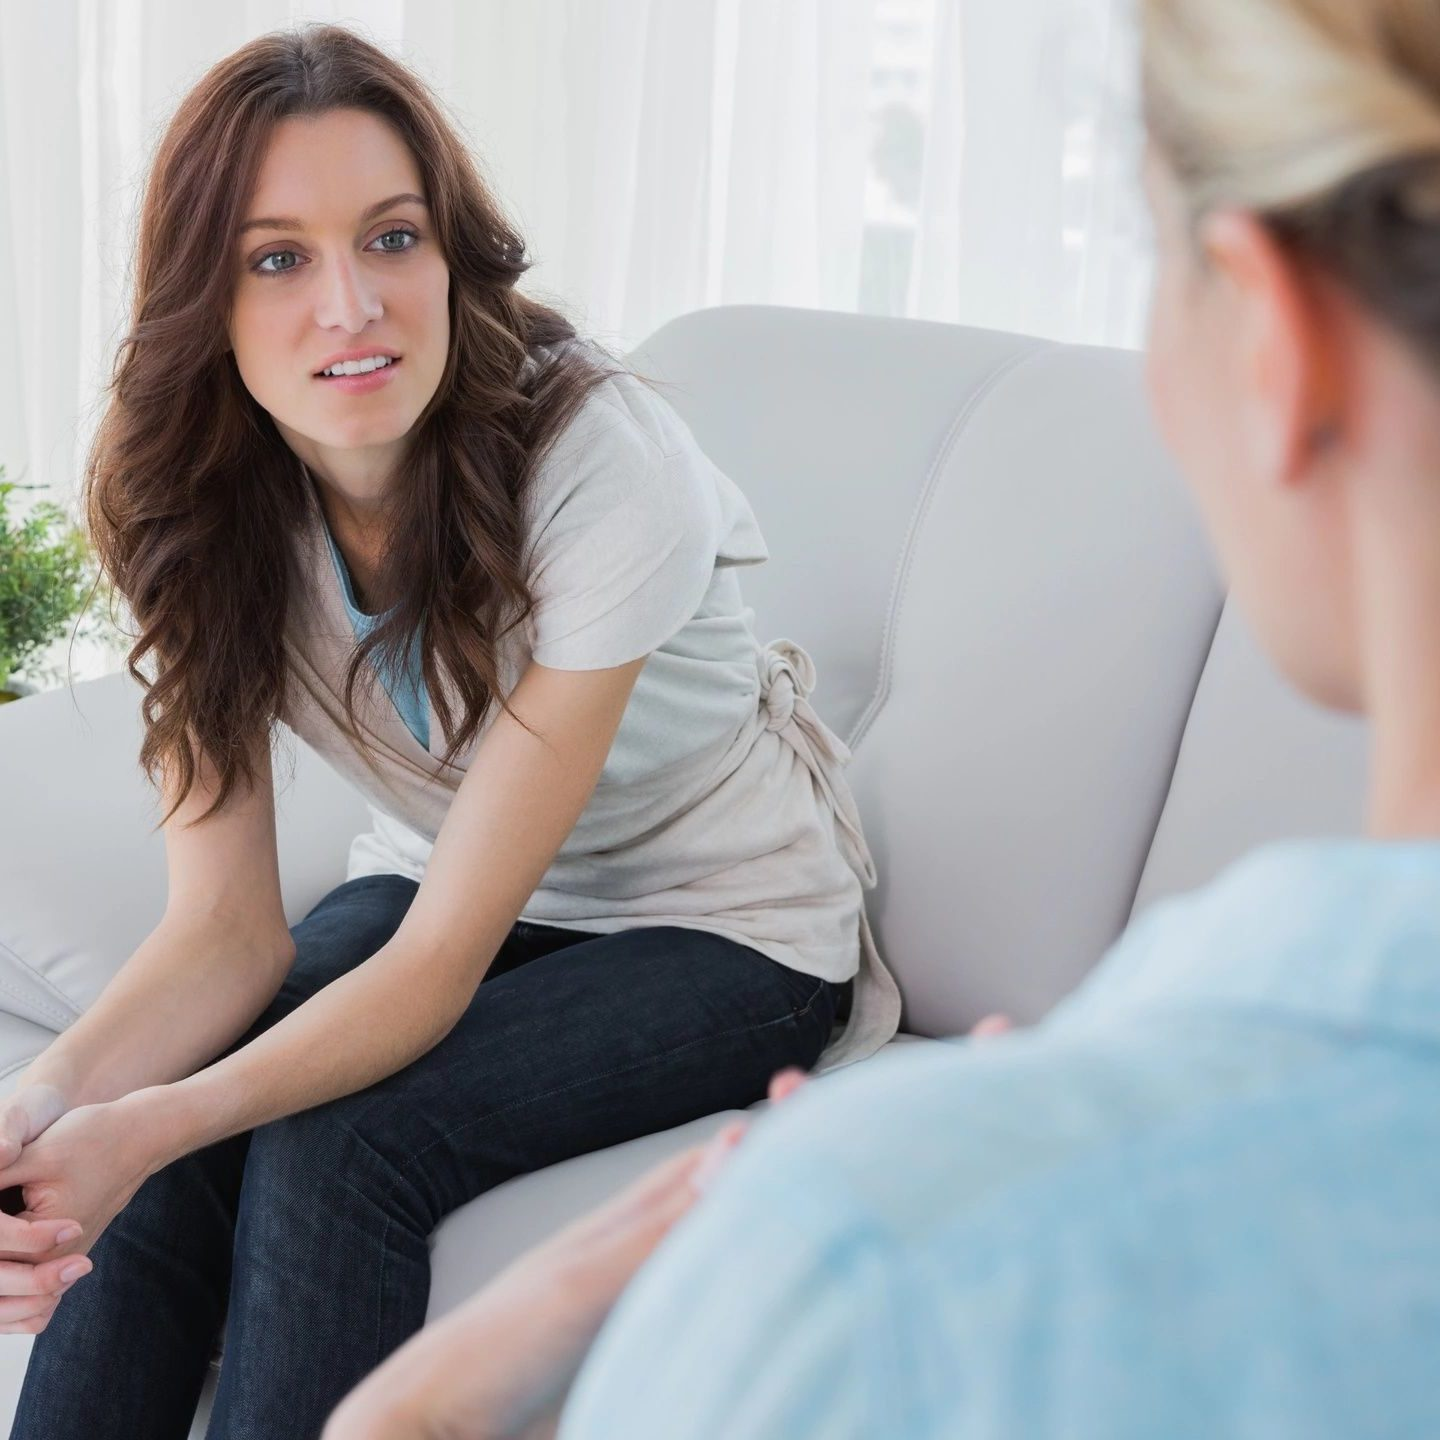 two females in a counseling session